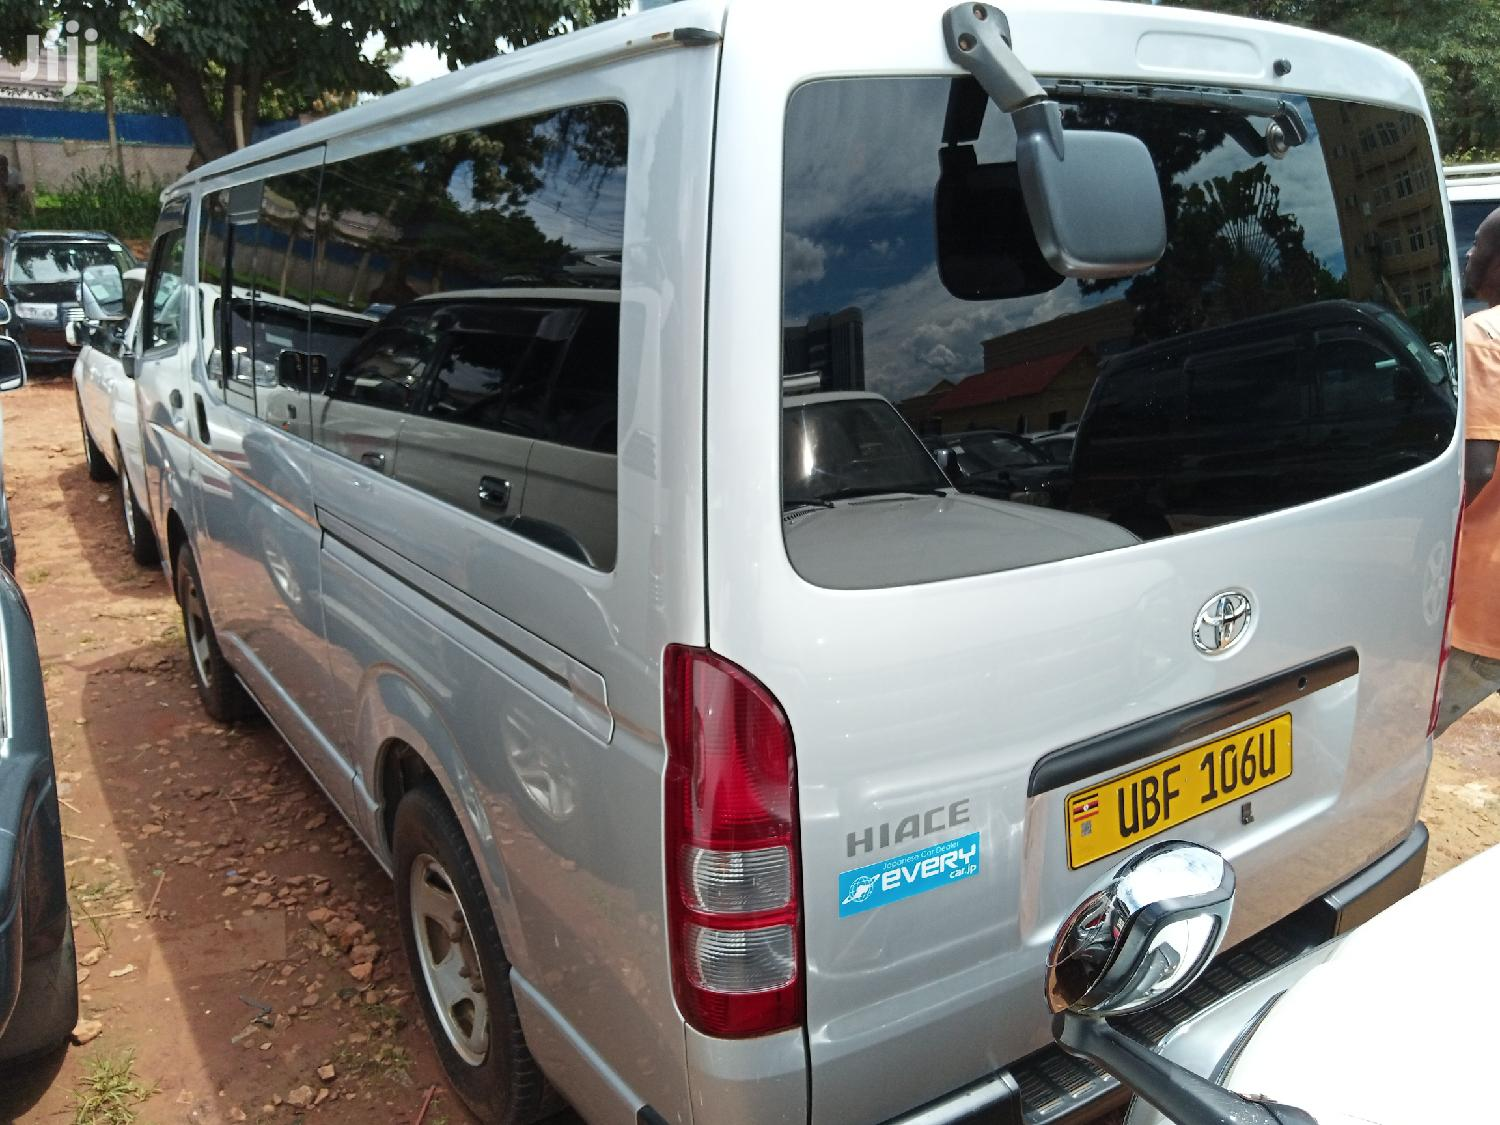 Toyota Ubf Drone 2007 Silver   Buses & Microbuses for sale in Kampala, Central Region, Uganda